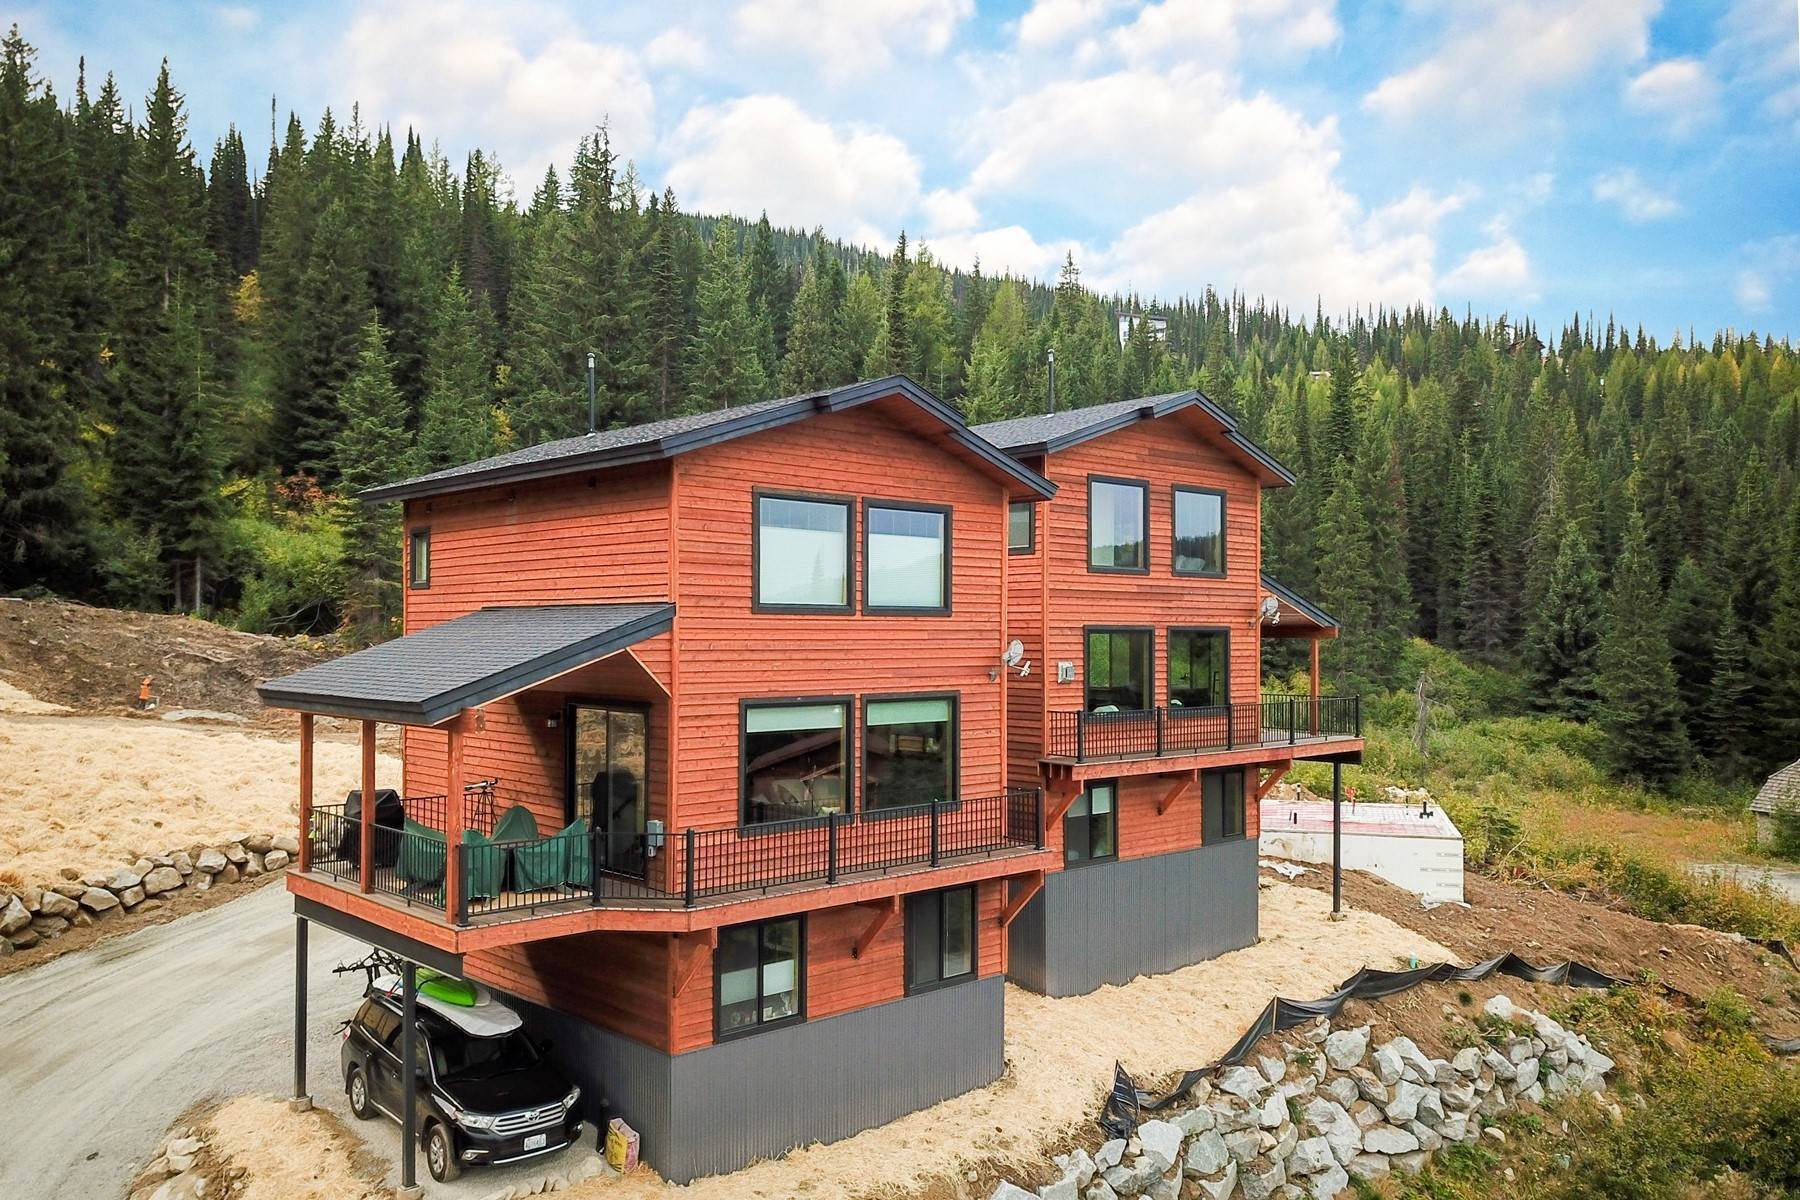 Single Family Homes for Sale at Schweitzer Mountain Getaway Lot 15 Harrison Lane Sandpoint, Idaho 83864